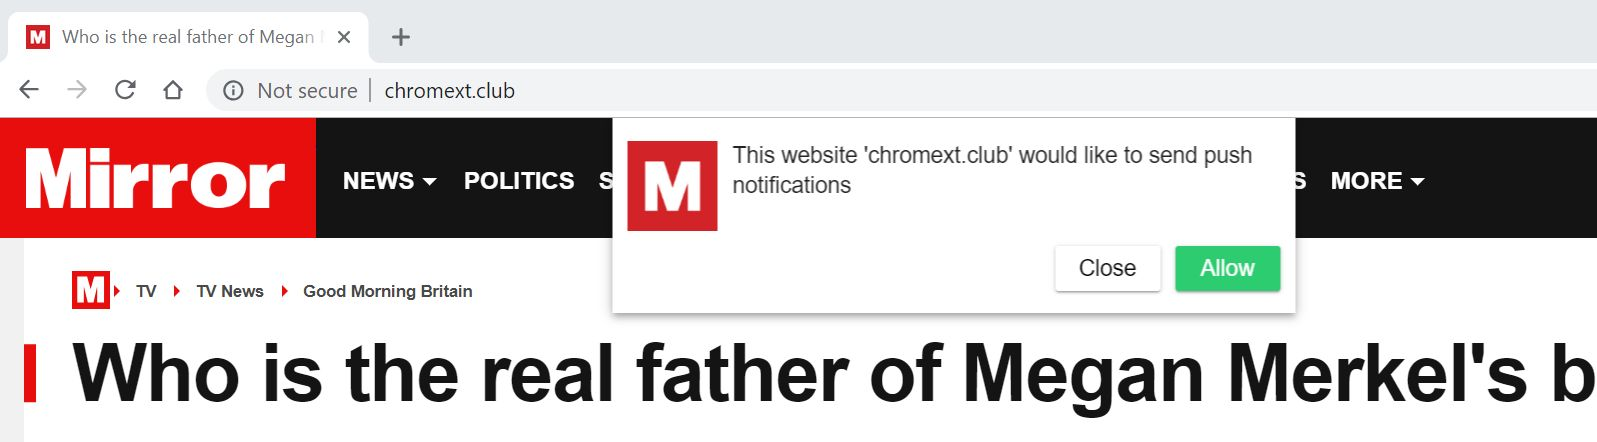 Image: Chrome browser is redirected to the Chromext.club site